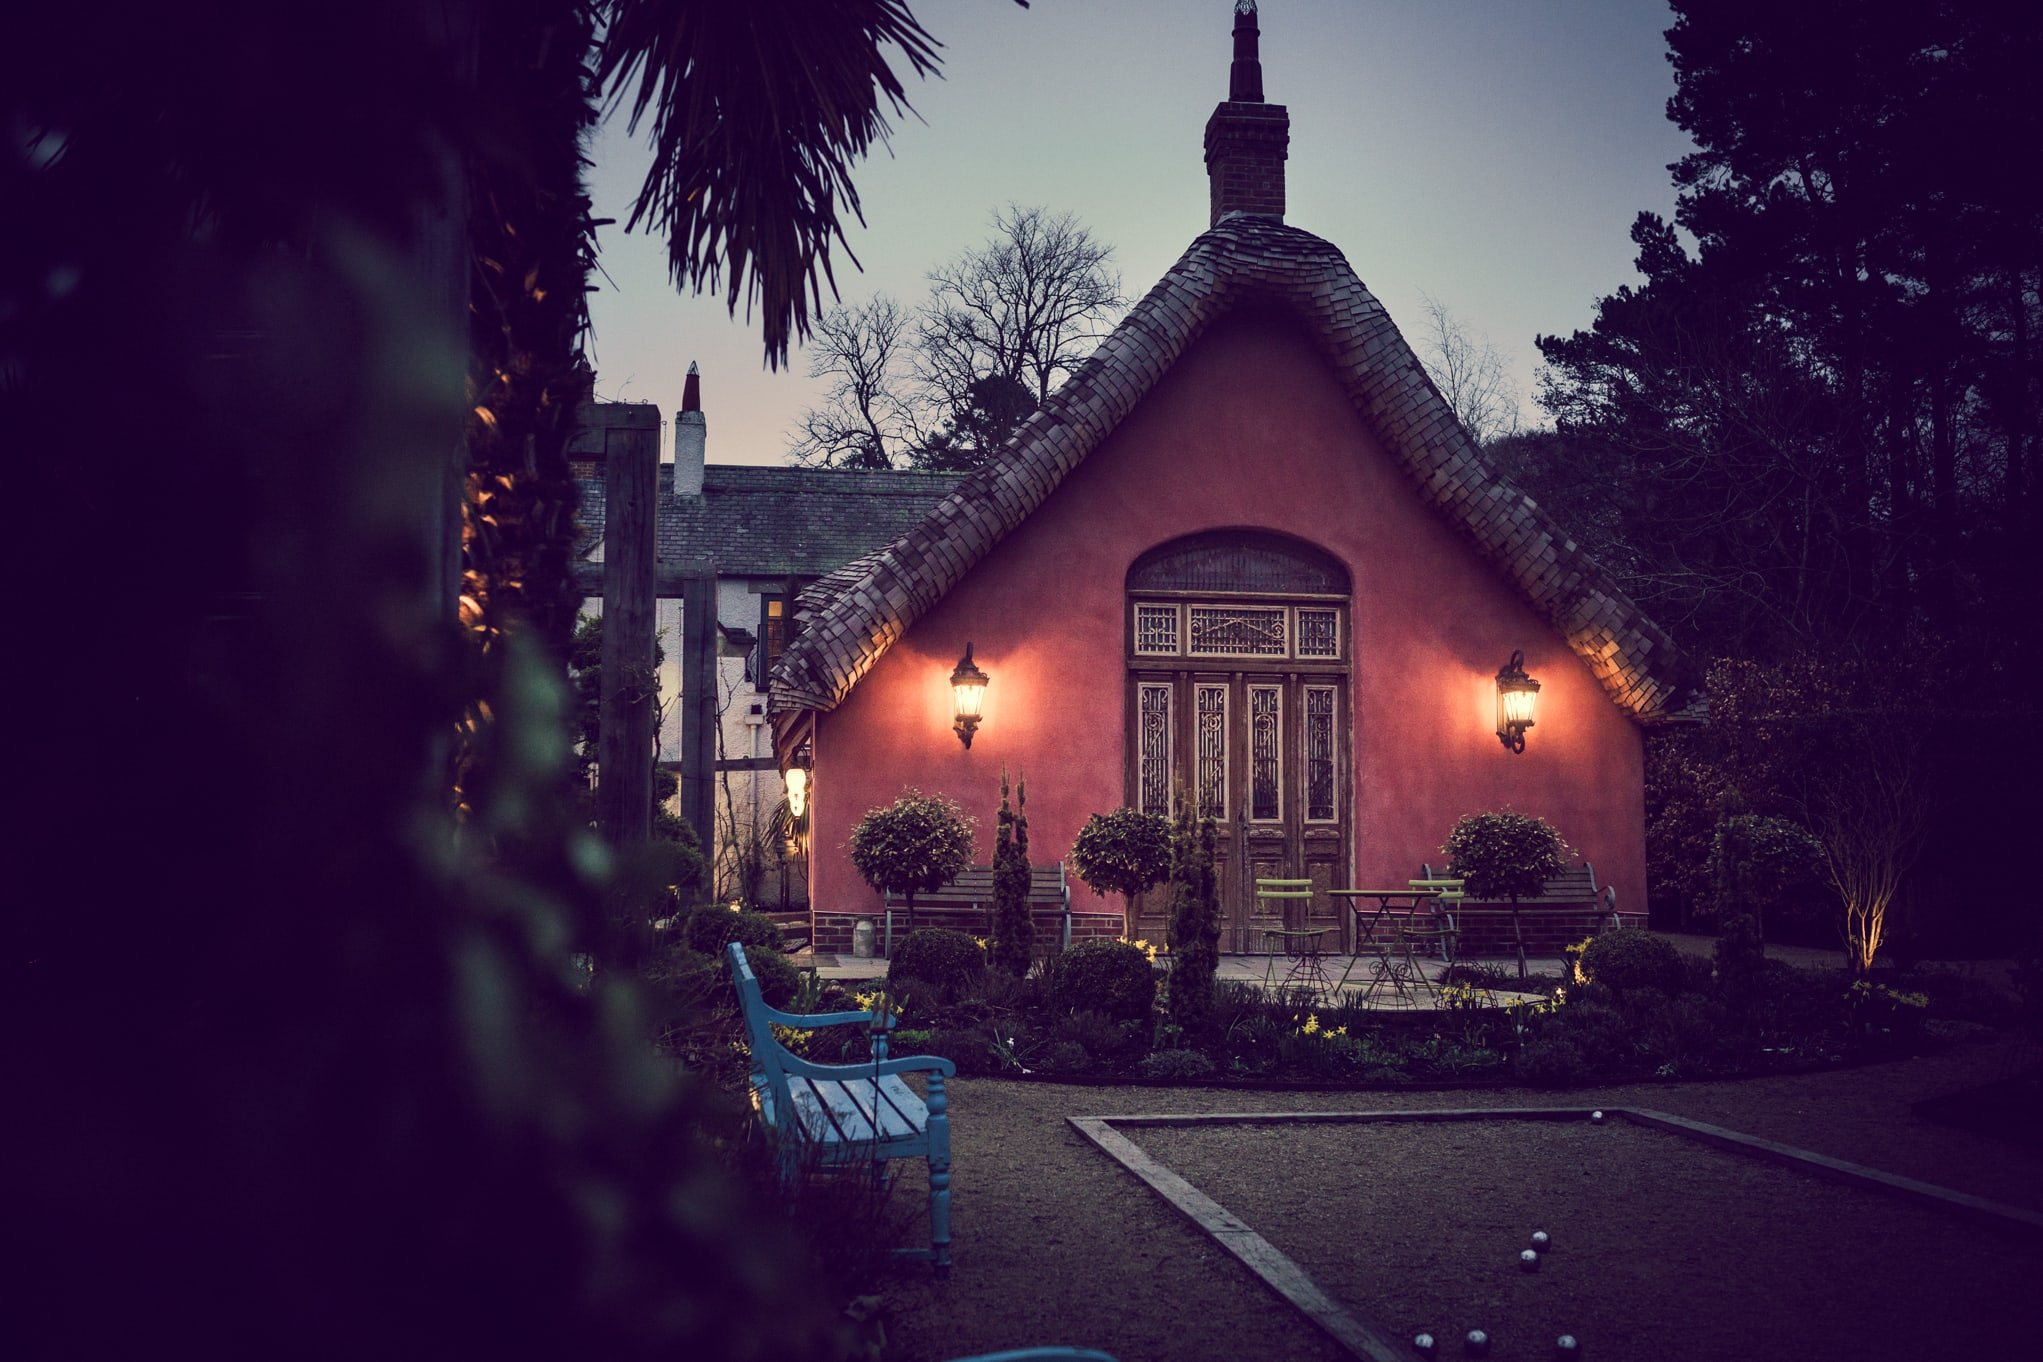 Le Petit Chateau, twilight